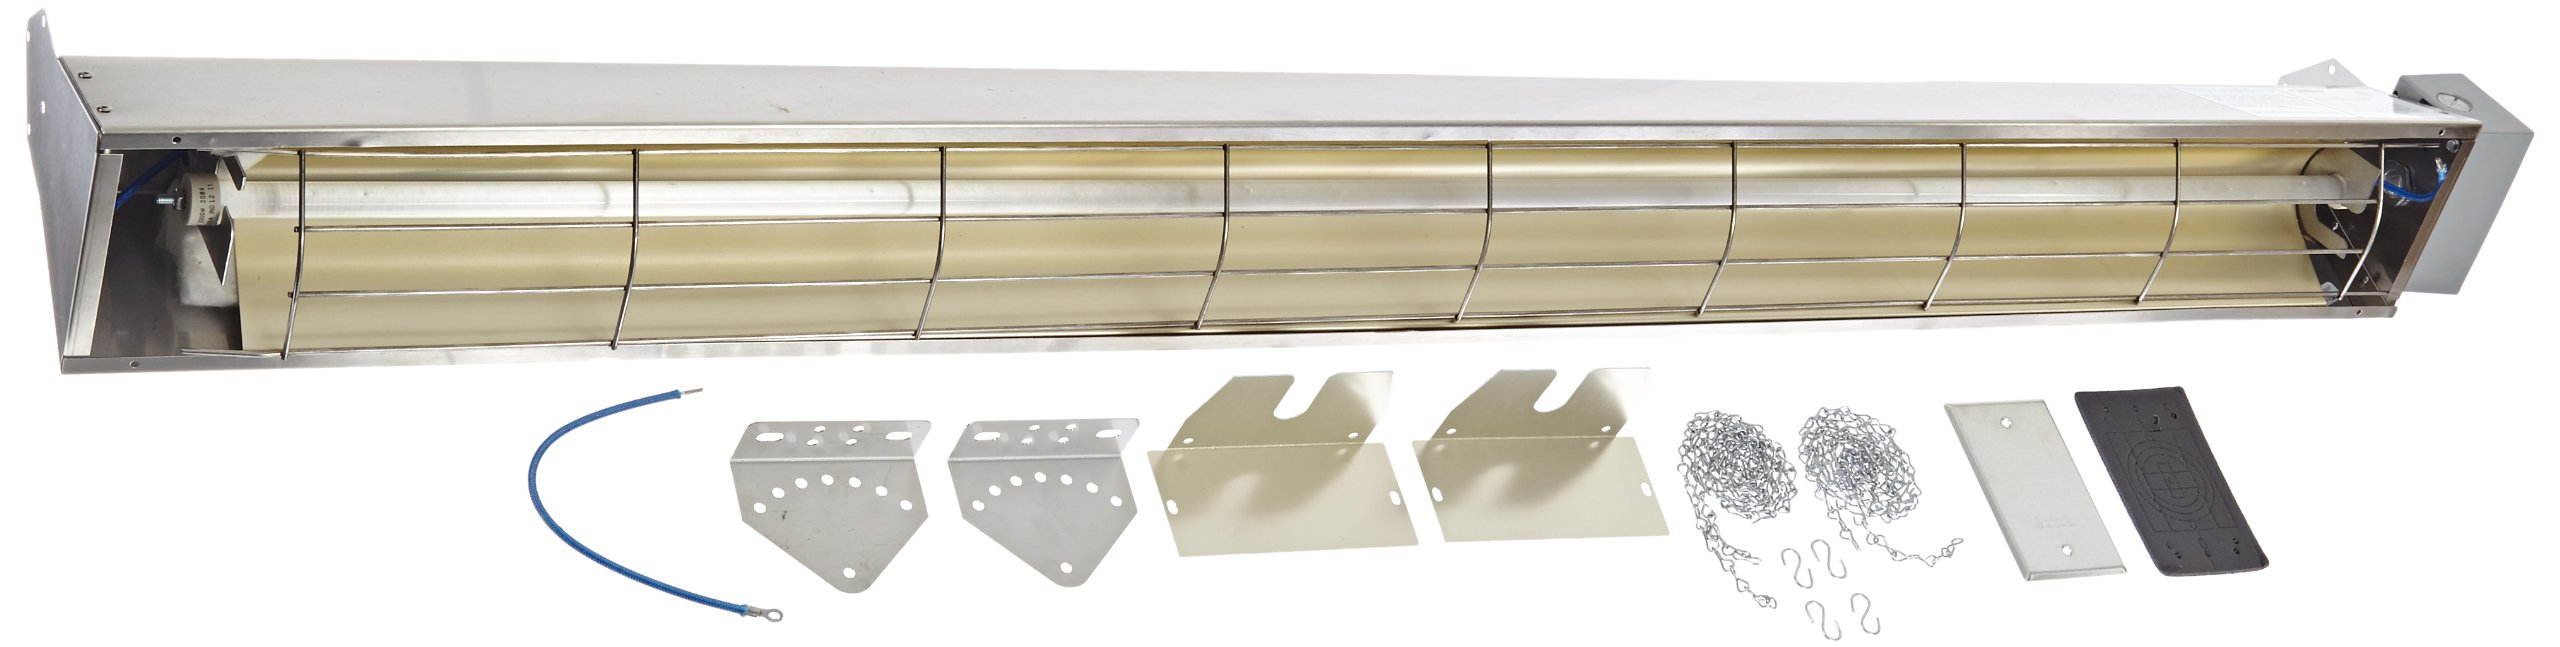 TPI Corporation OCHWG-57 Wire Guard, Stainless Steel, Used with  OCH-57 Series Quartz Infrared Heaters